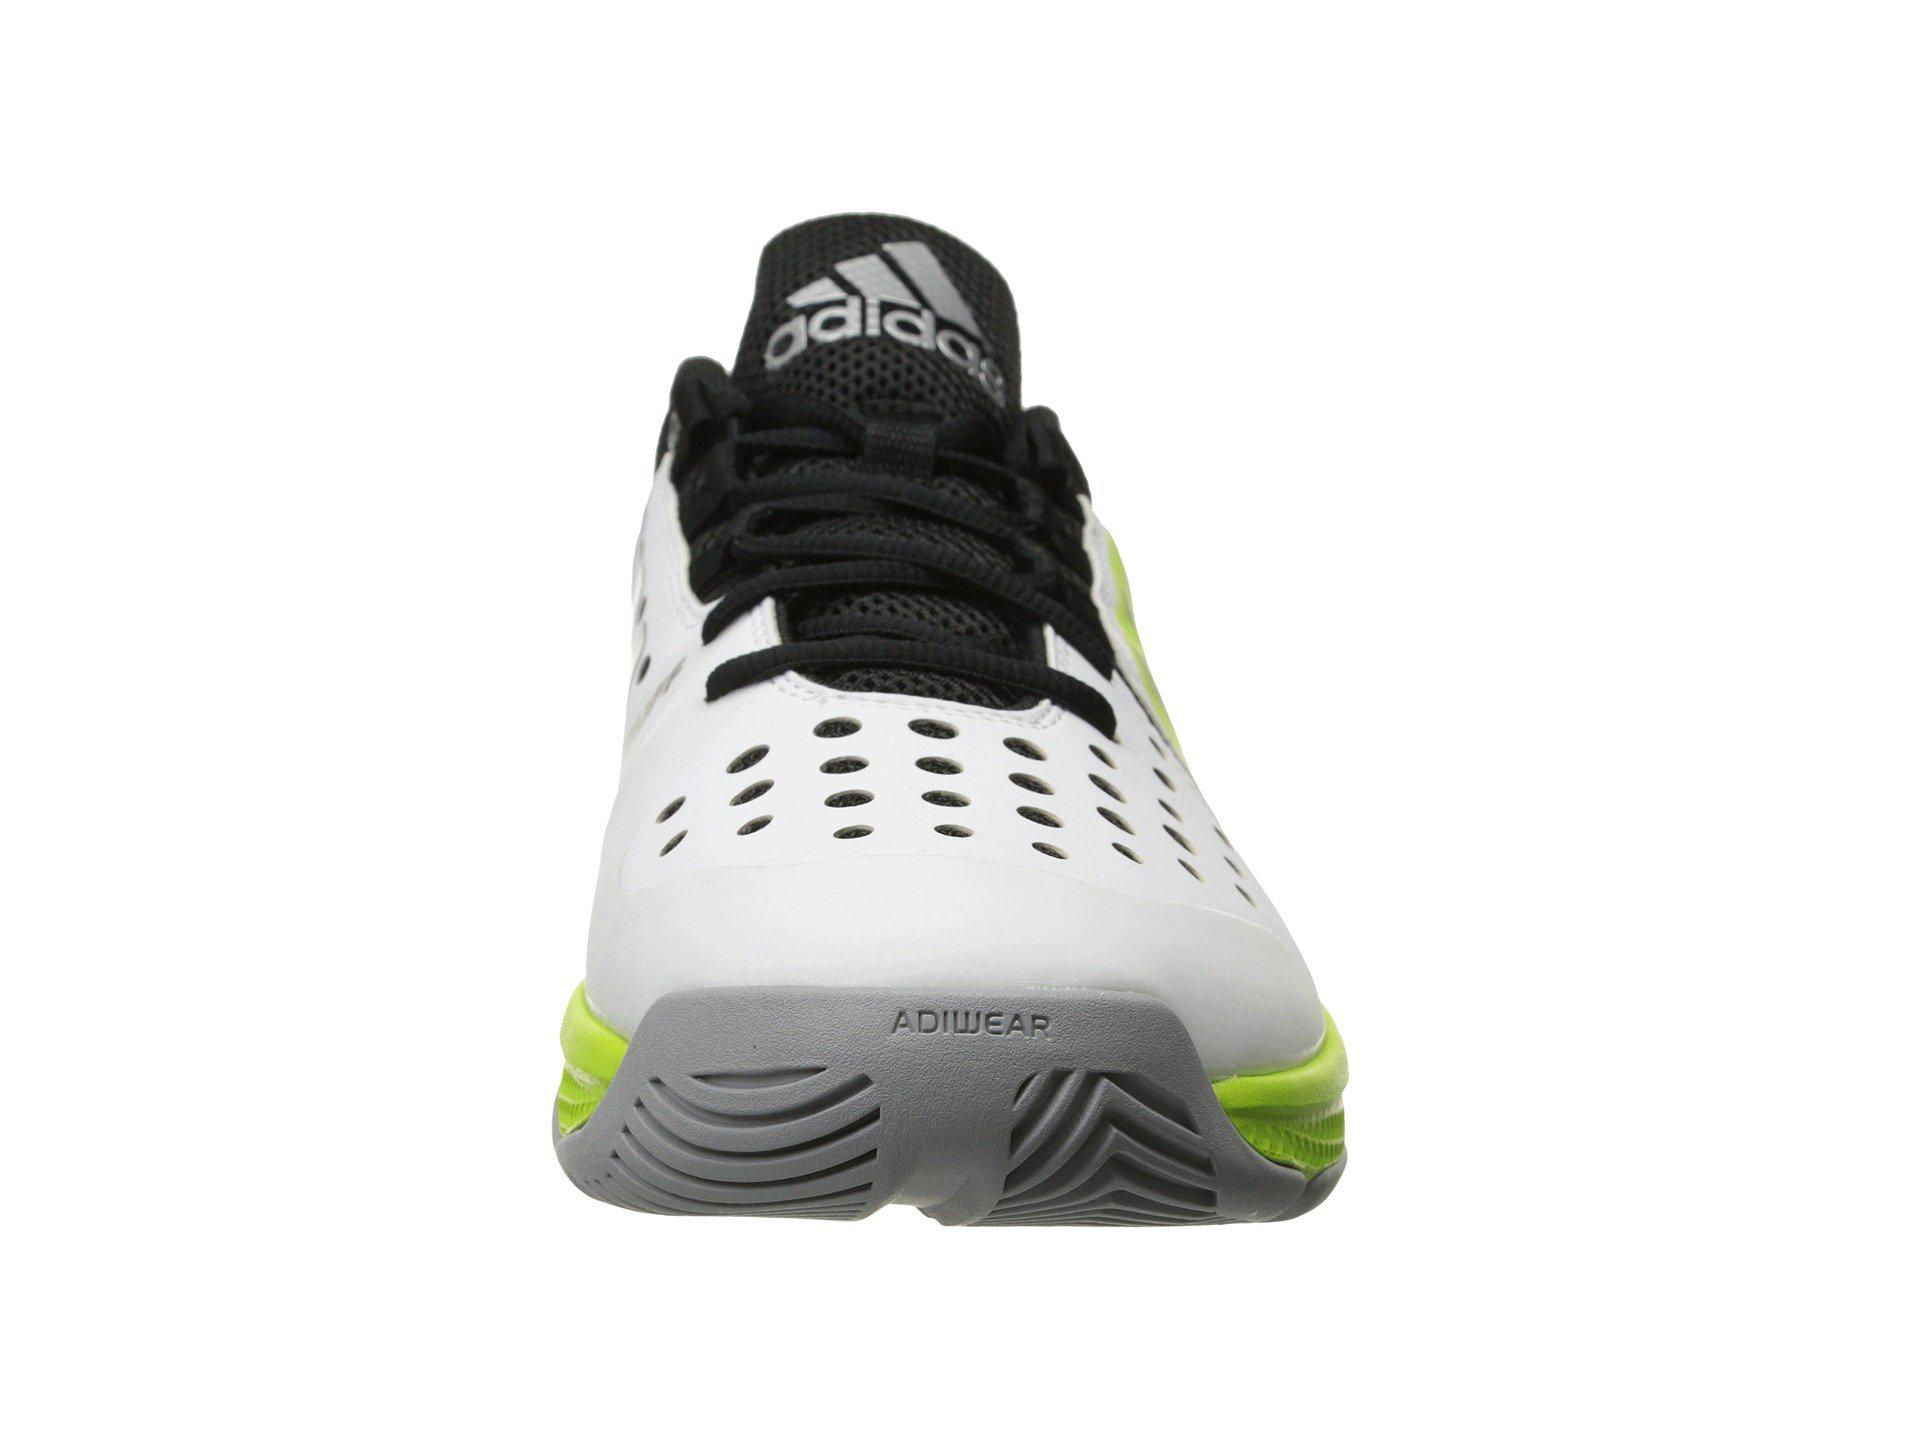 0fad97d4d Lyst - Adidas Barricade Classic Bounce in Black for Men